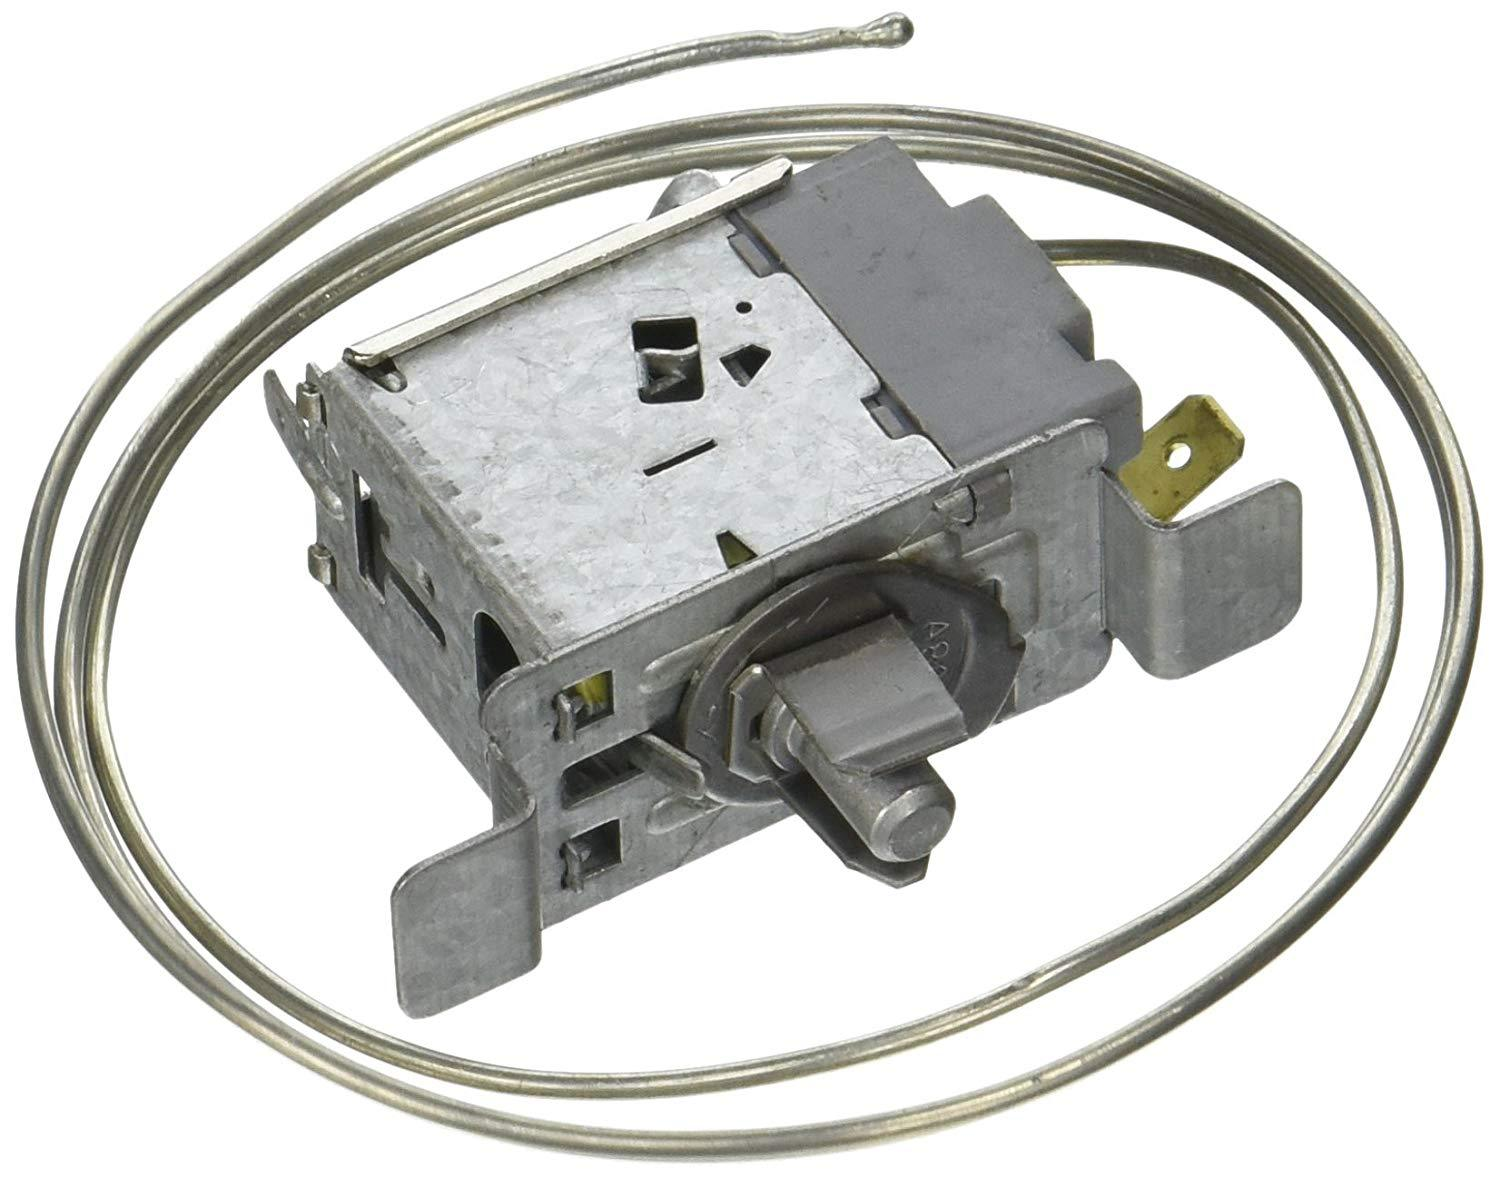 Kenmore / Sears 25363084300 Cold Control Thermostat Replacement